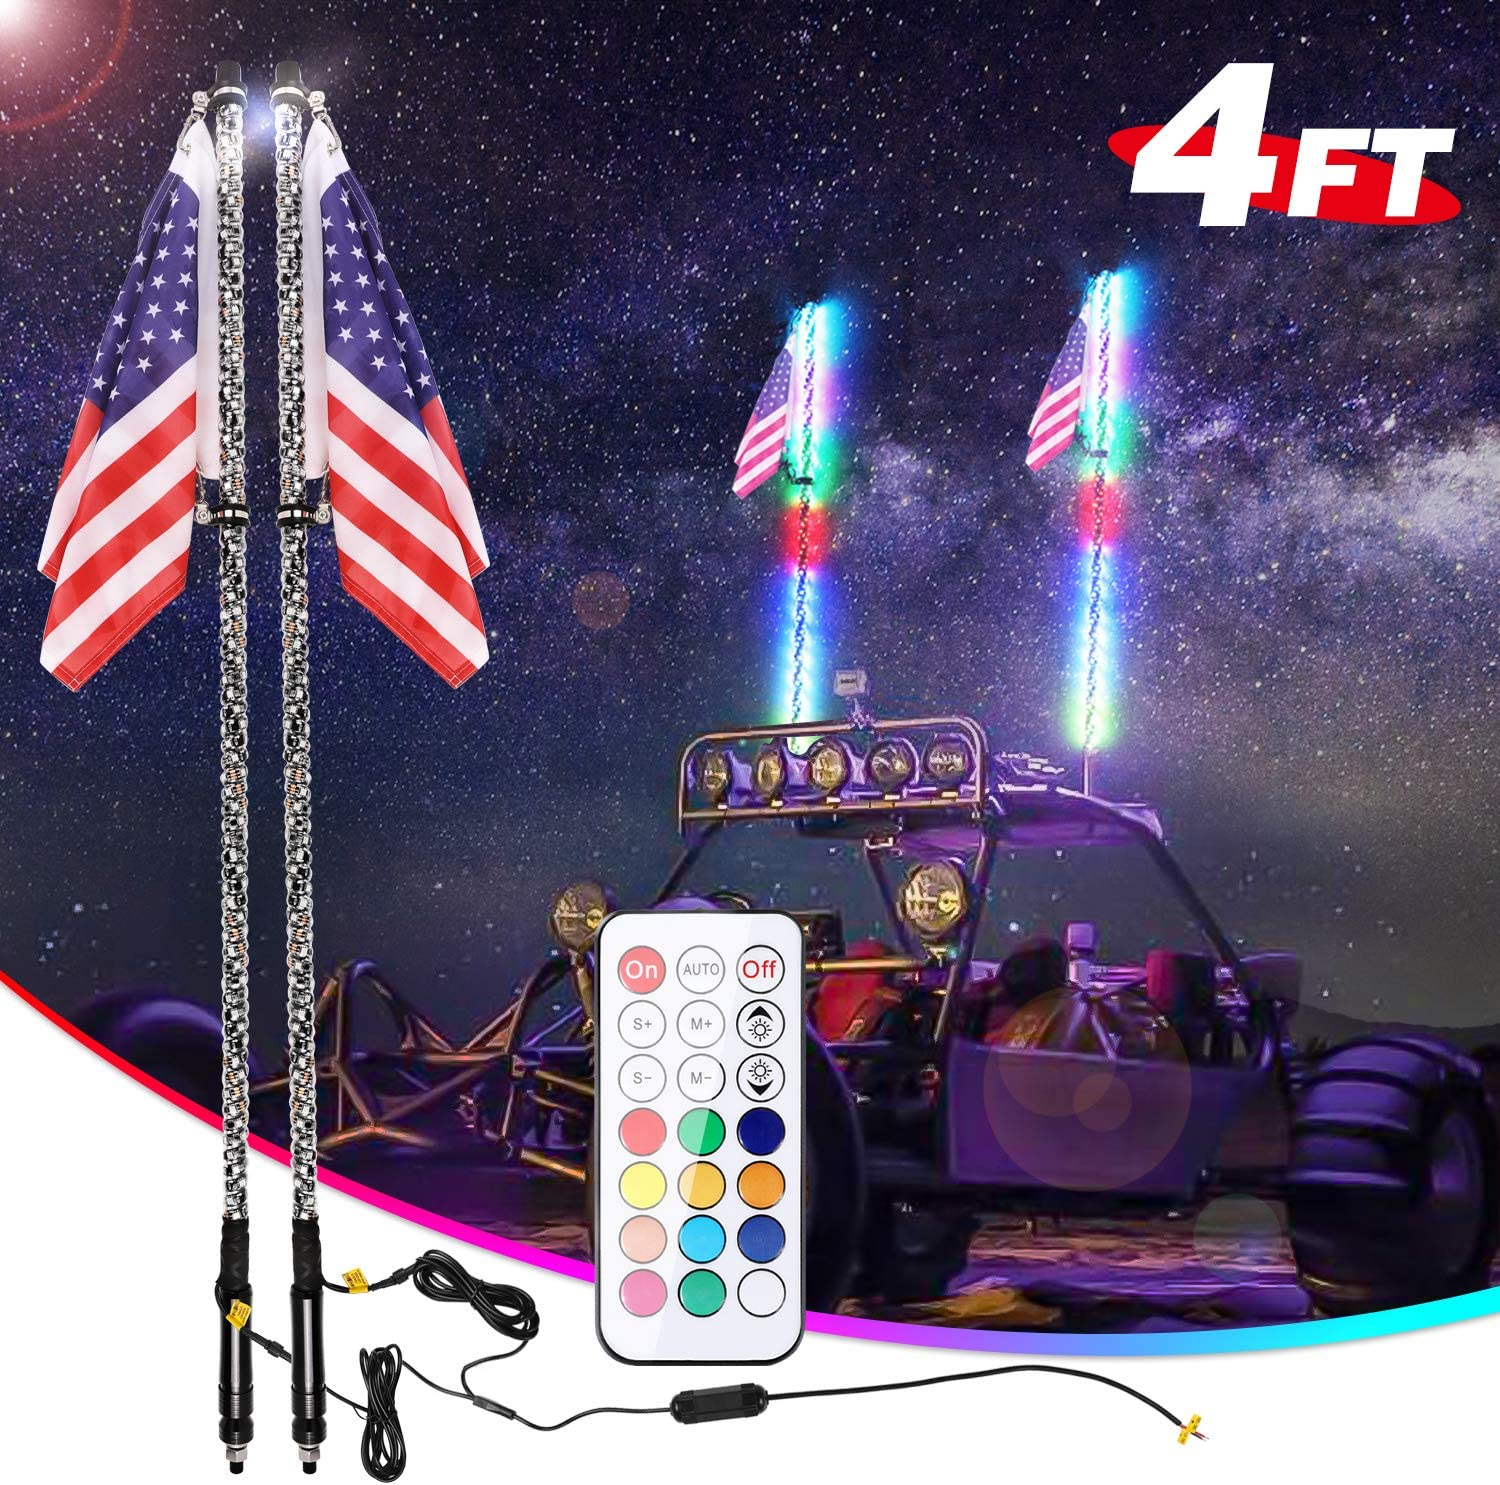 6/' TWISTED SILVER LED WHIP ANTENNA QUICK RELEASE ATV UTV RZR Buggy sand rail